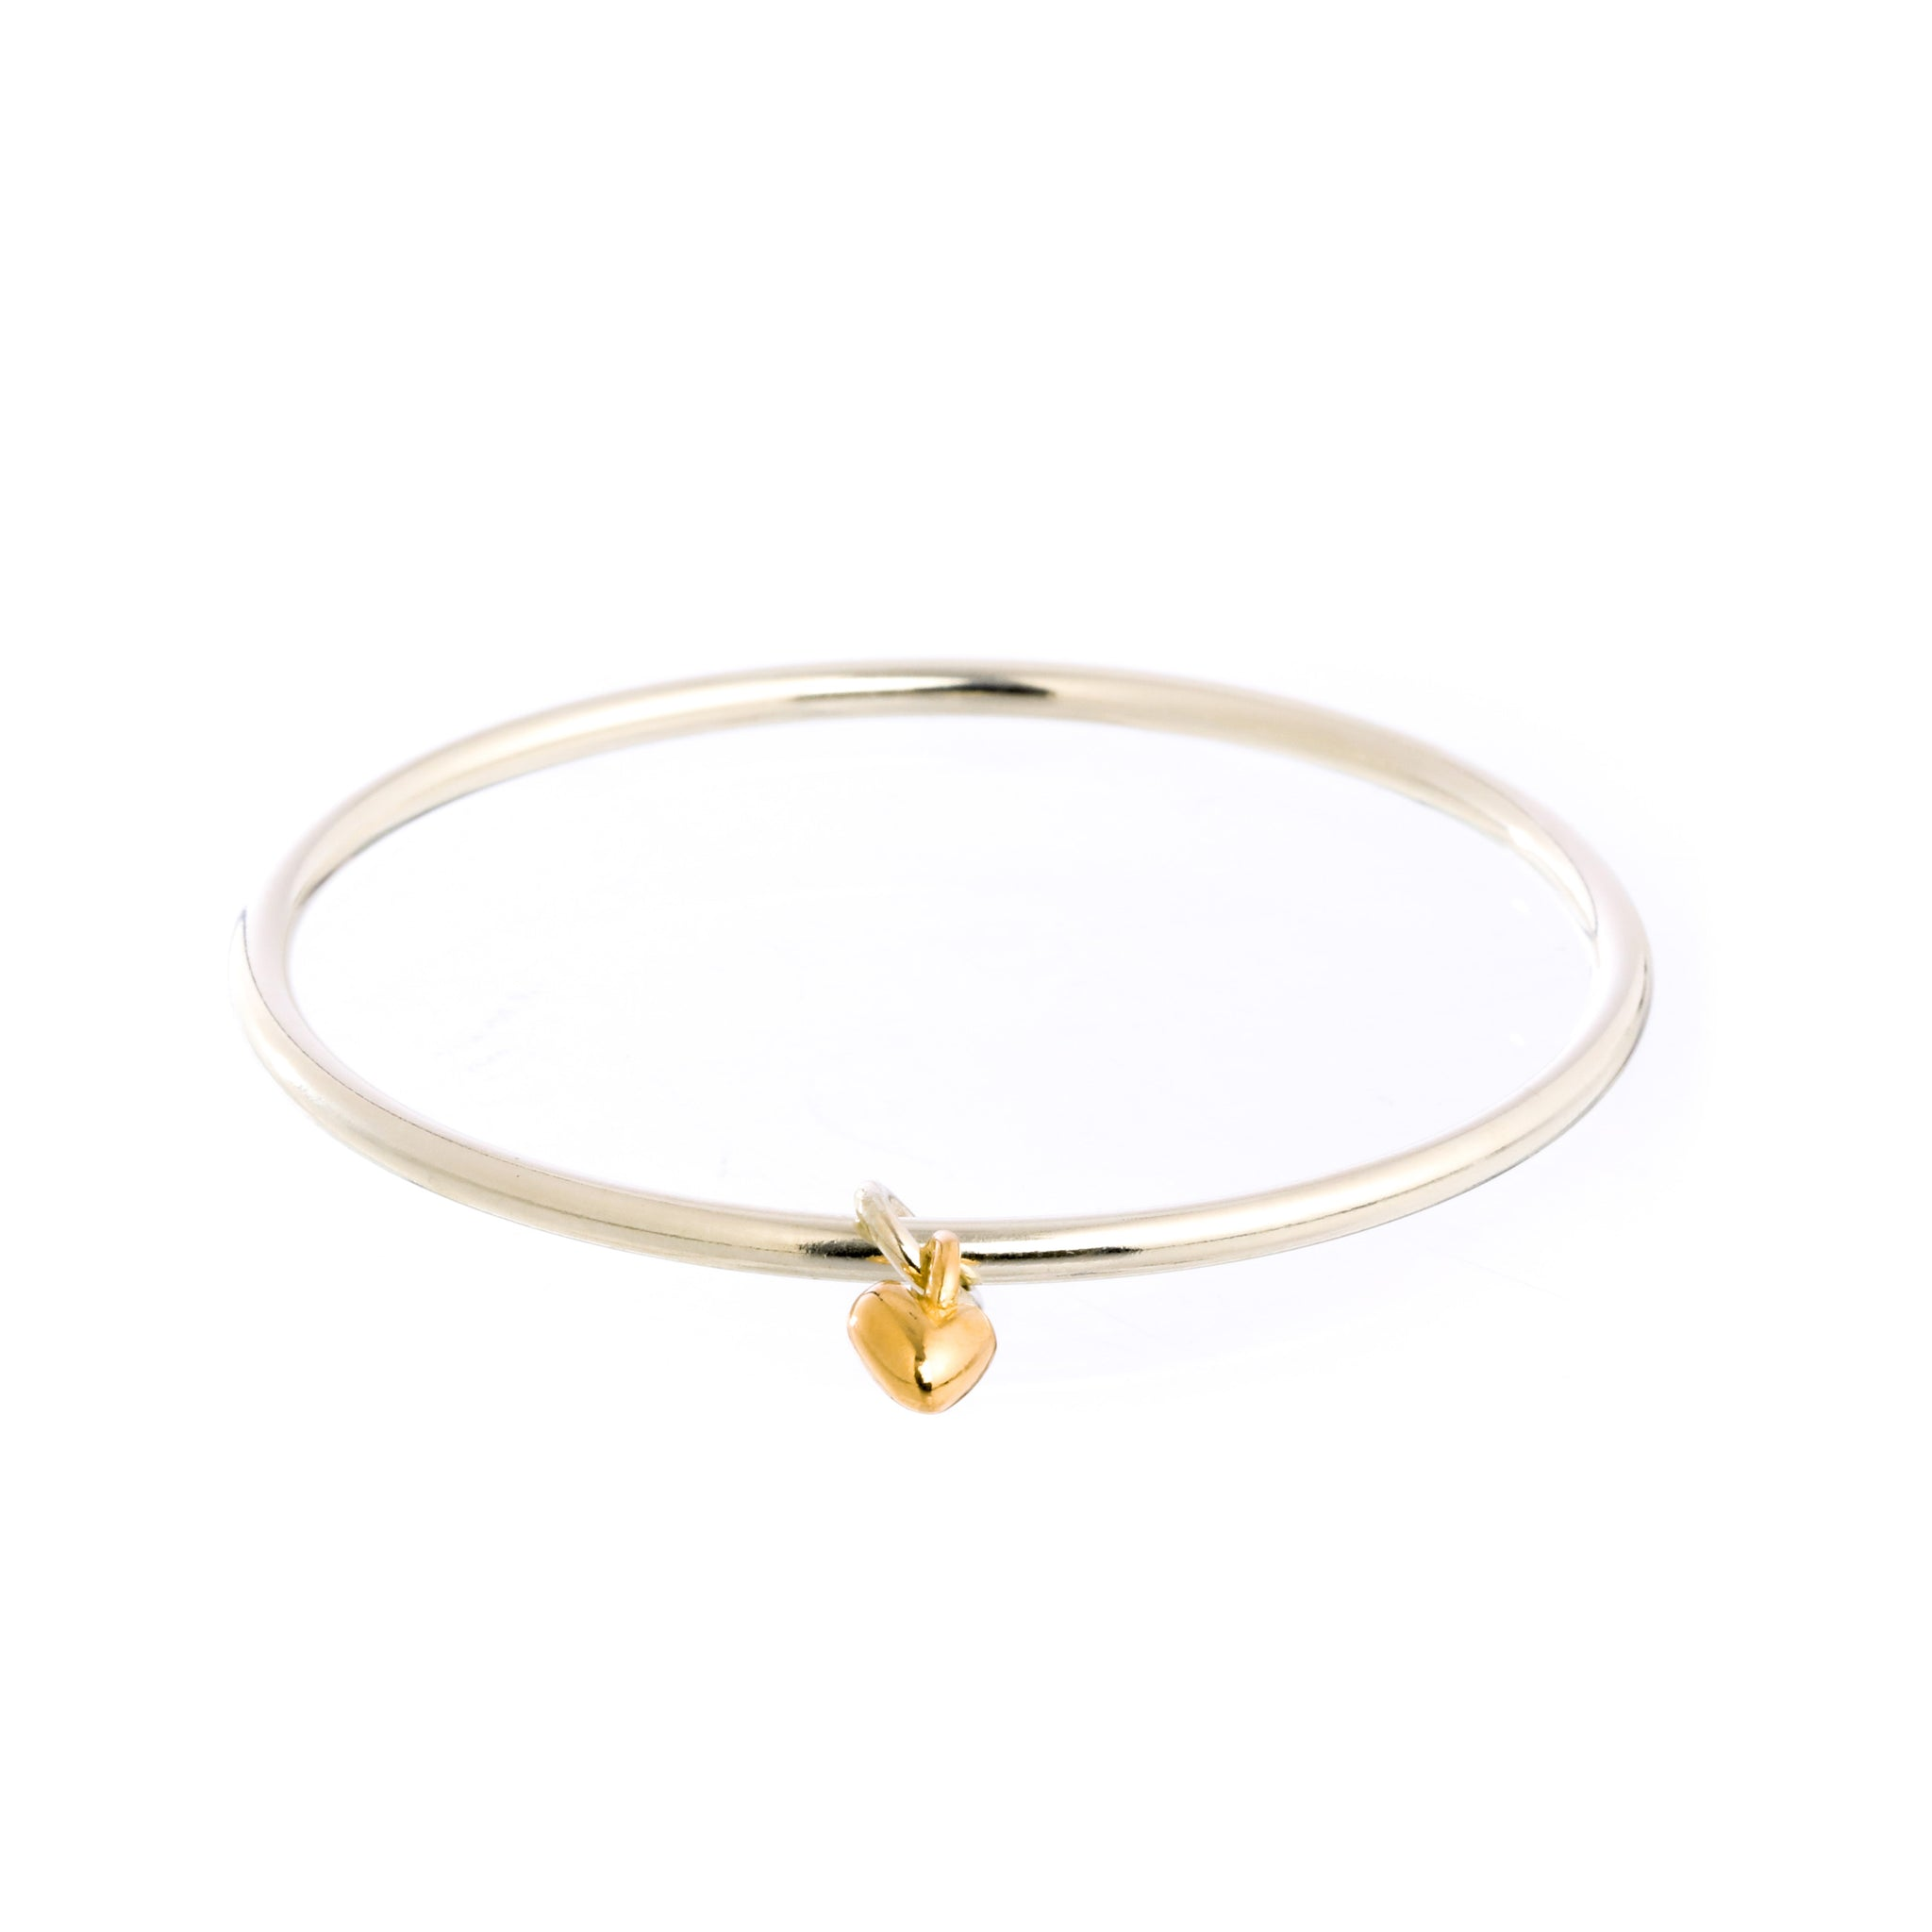 Sweetheart Silver & Gold Heart Charm Bangle